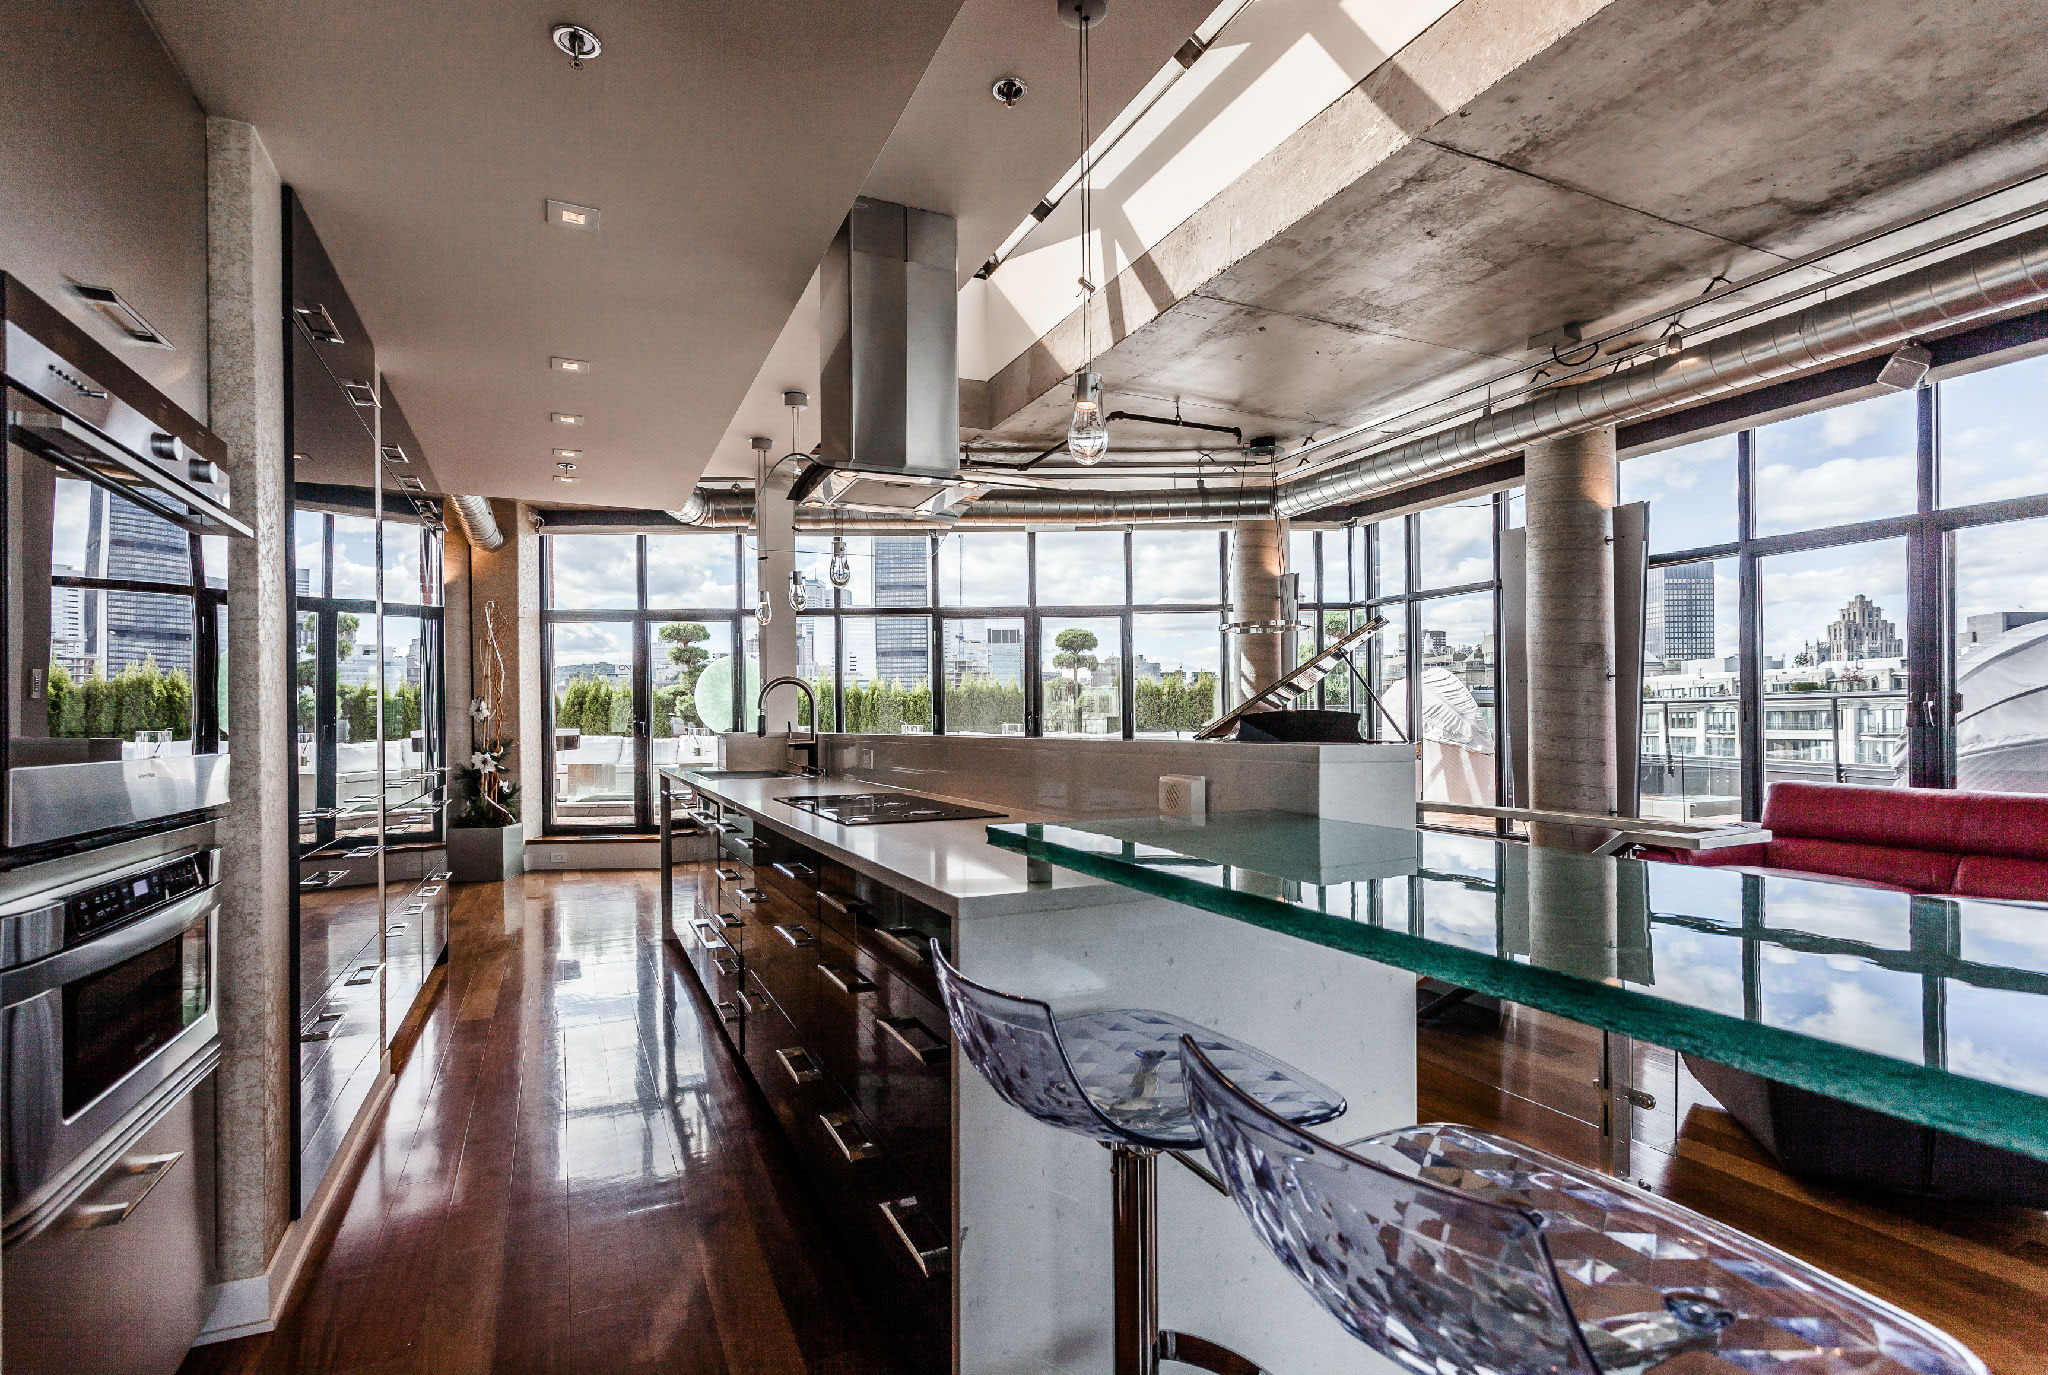 <strong>Montreal: City Penthouse</strong><br/> <i>Opportunity savings for a Chinese buyer</i><br/> Local housing prices: 12%<br/> Currency change: -6%<br/> Property asking price: C$2.4M<br/> Cost for buyer in 2014: ¥12.7M<br/> Cost for buyer in 2016: ¥11.9M